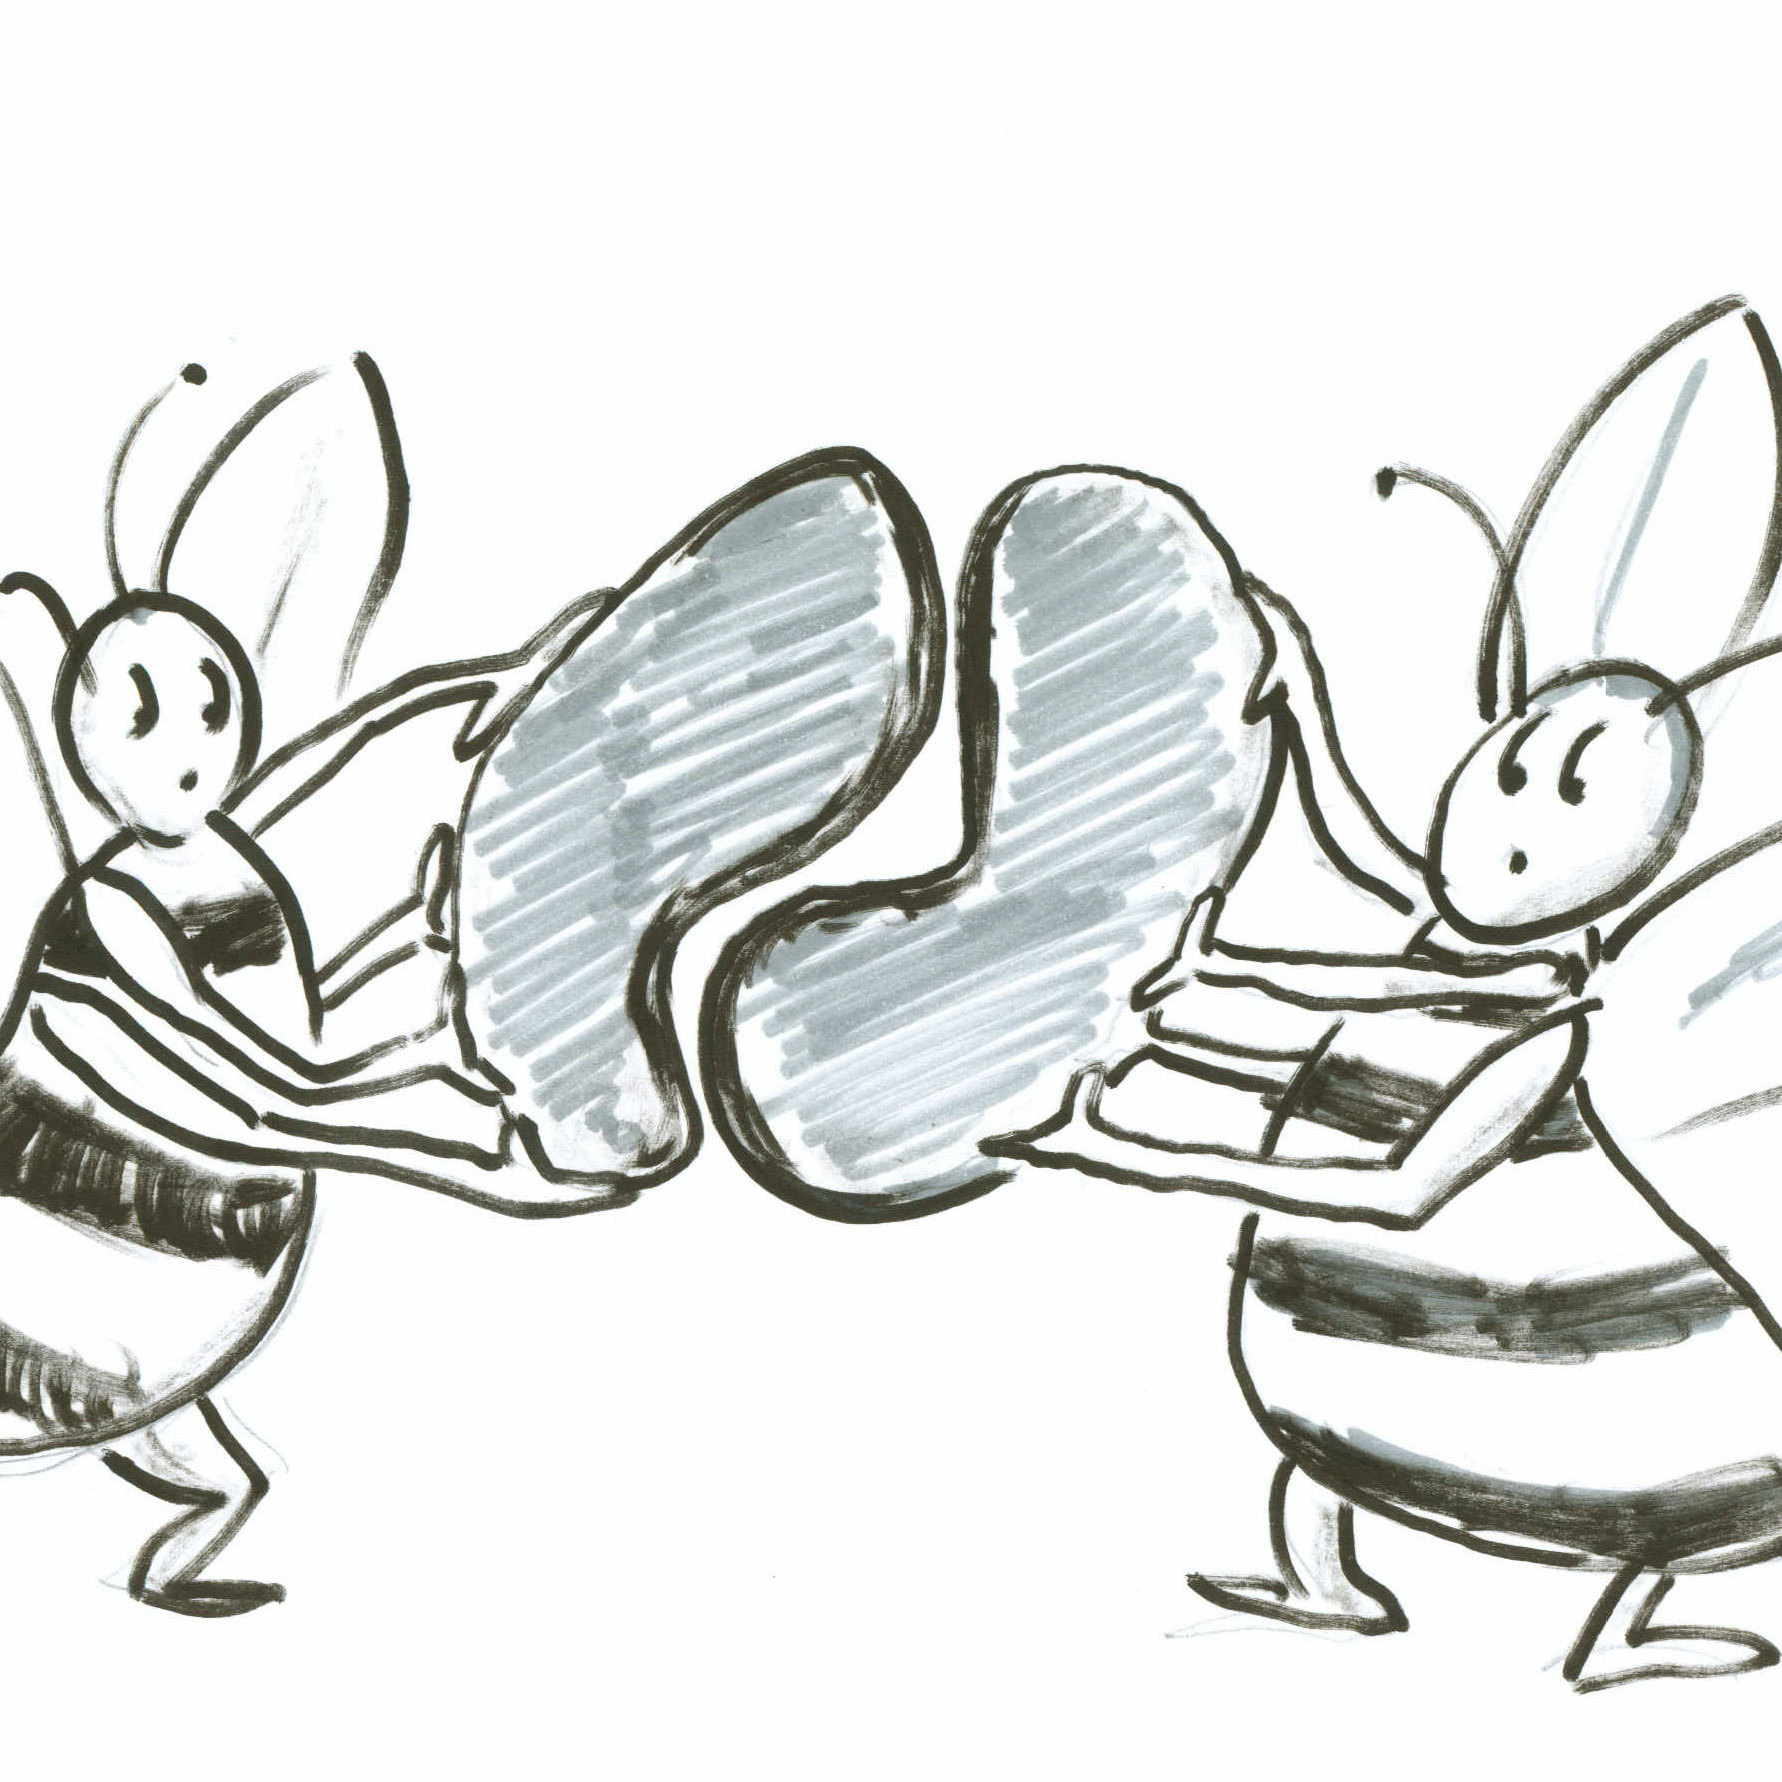 Two bees with random shapes